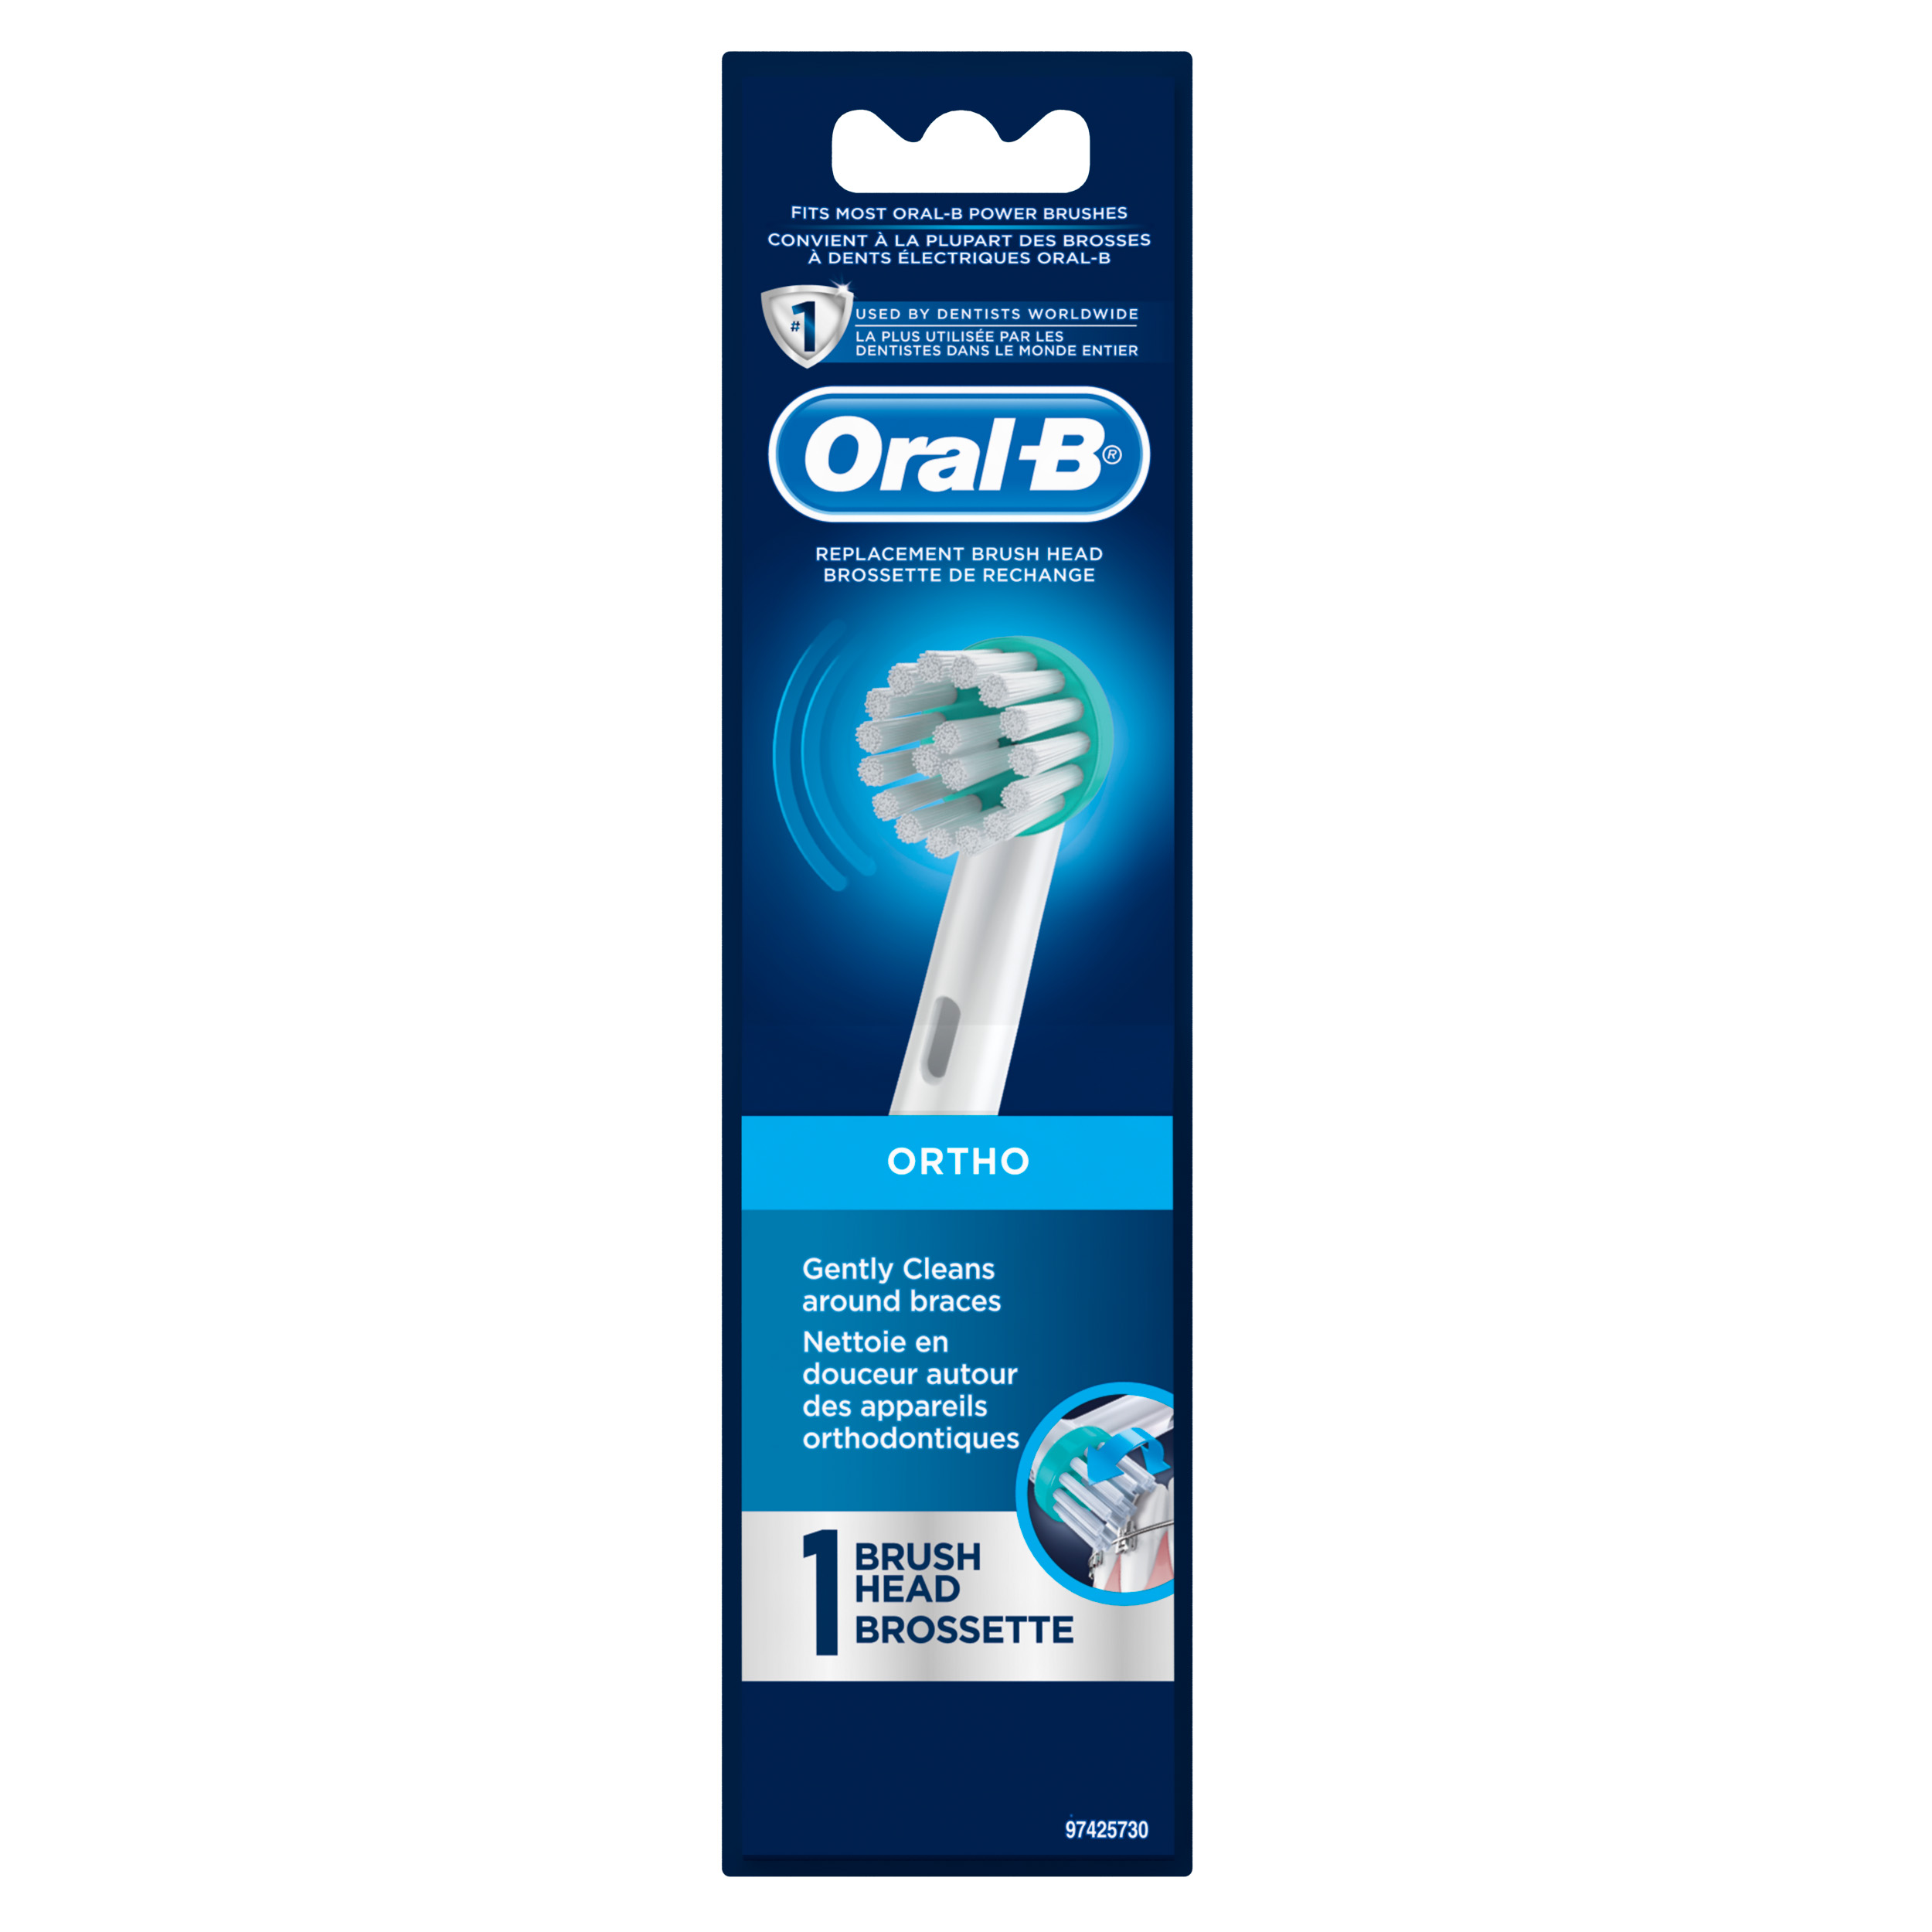 Oral-B Ortho Electric Toothbrush Replacement Brush Head, 1 Count